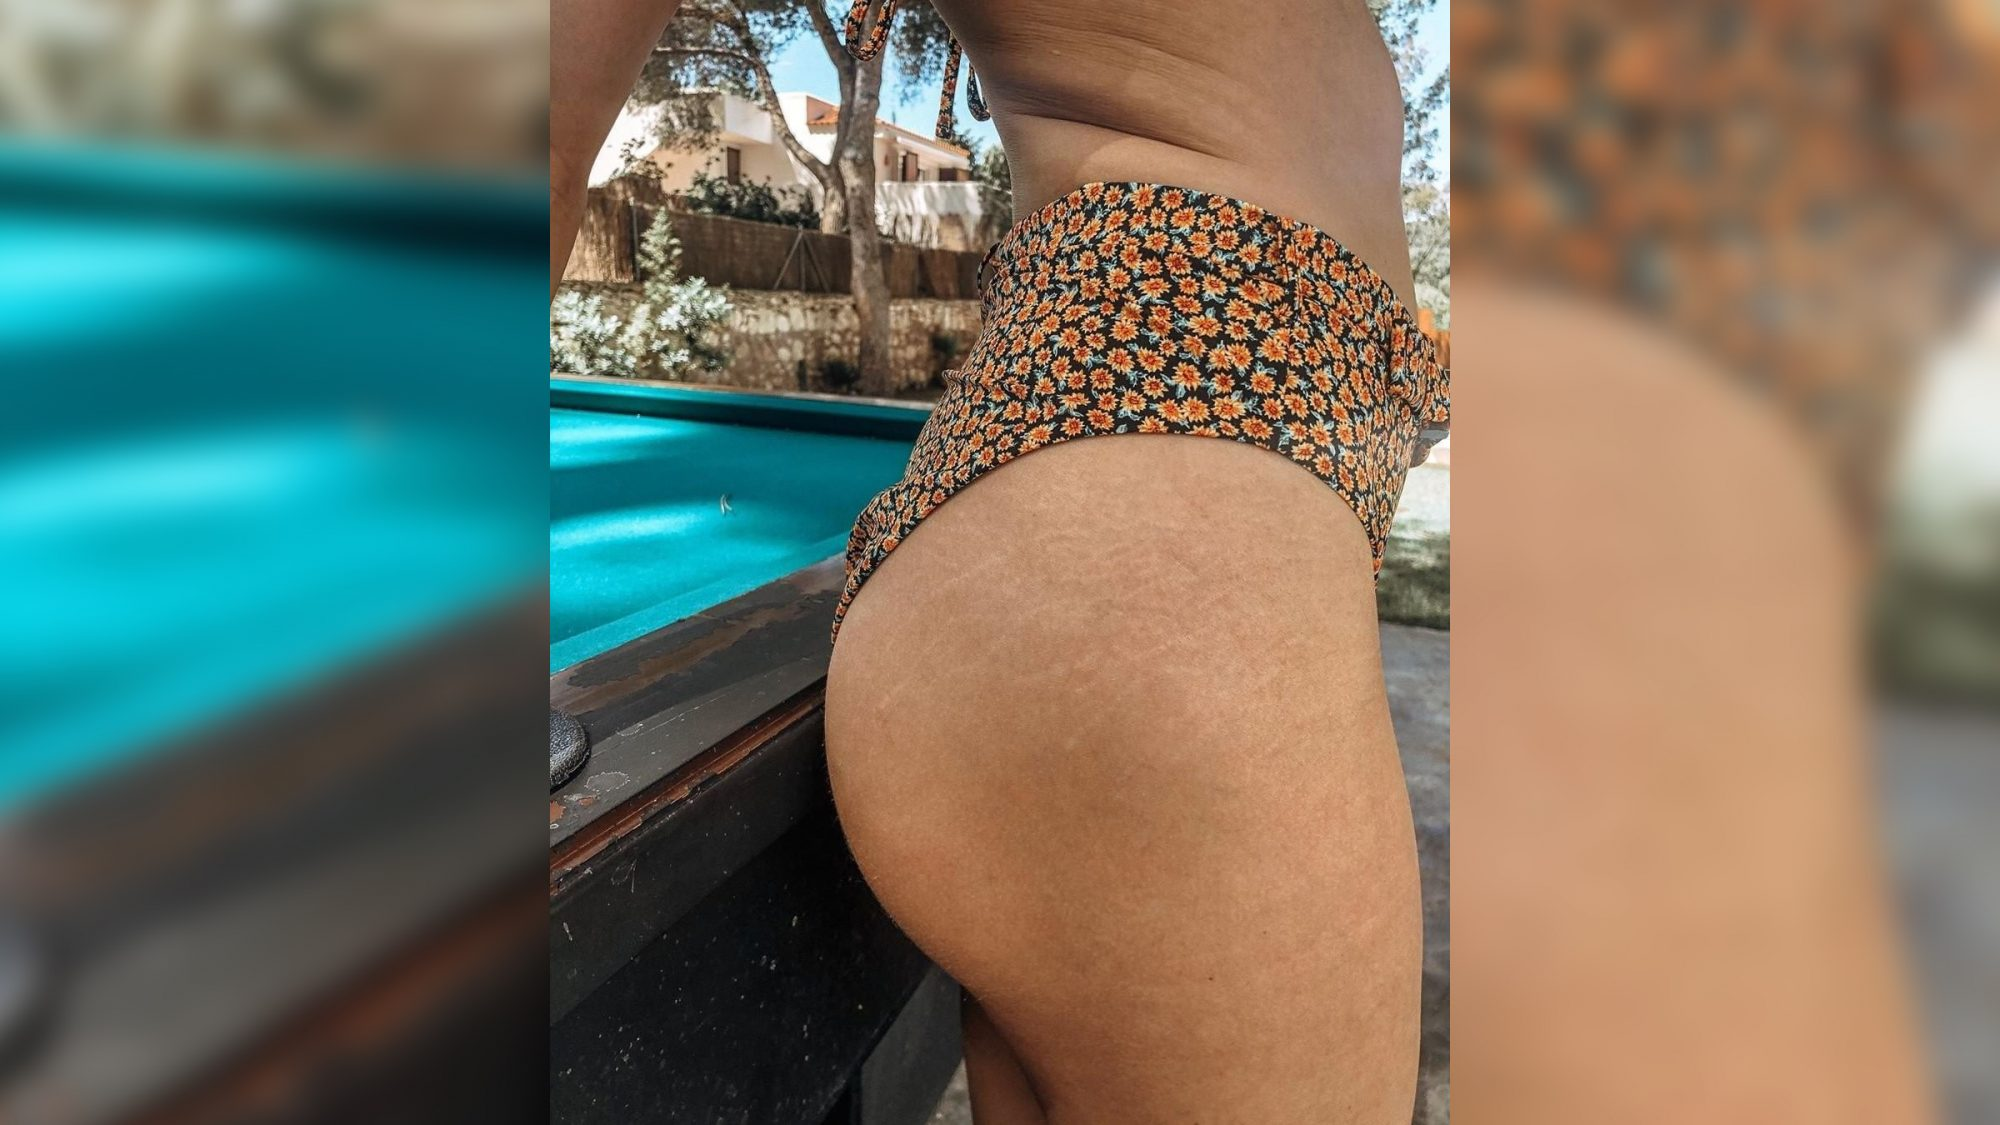 This Woman Is Showing Off Her Stretch Marks to Prove They Don't Require an Explanation